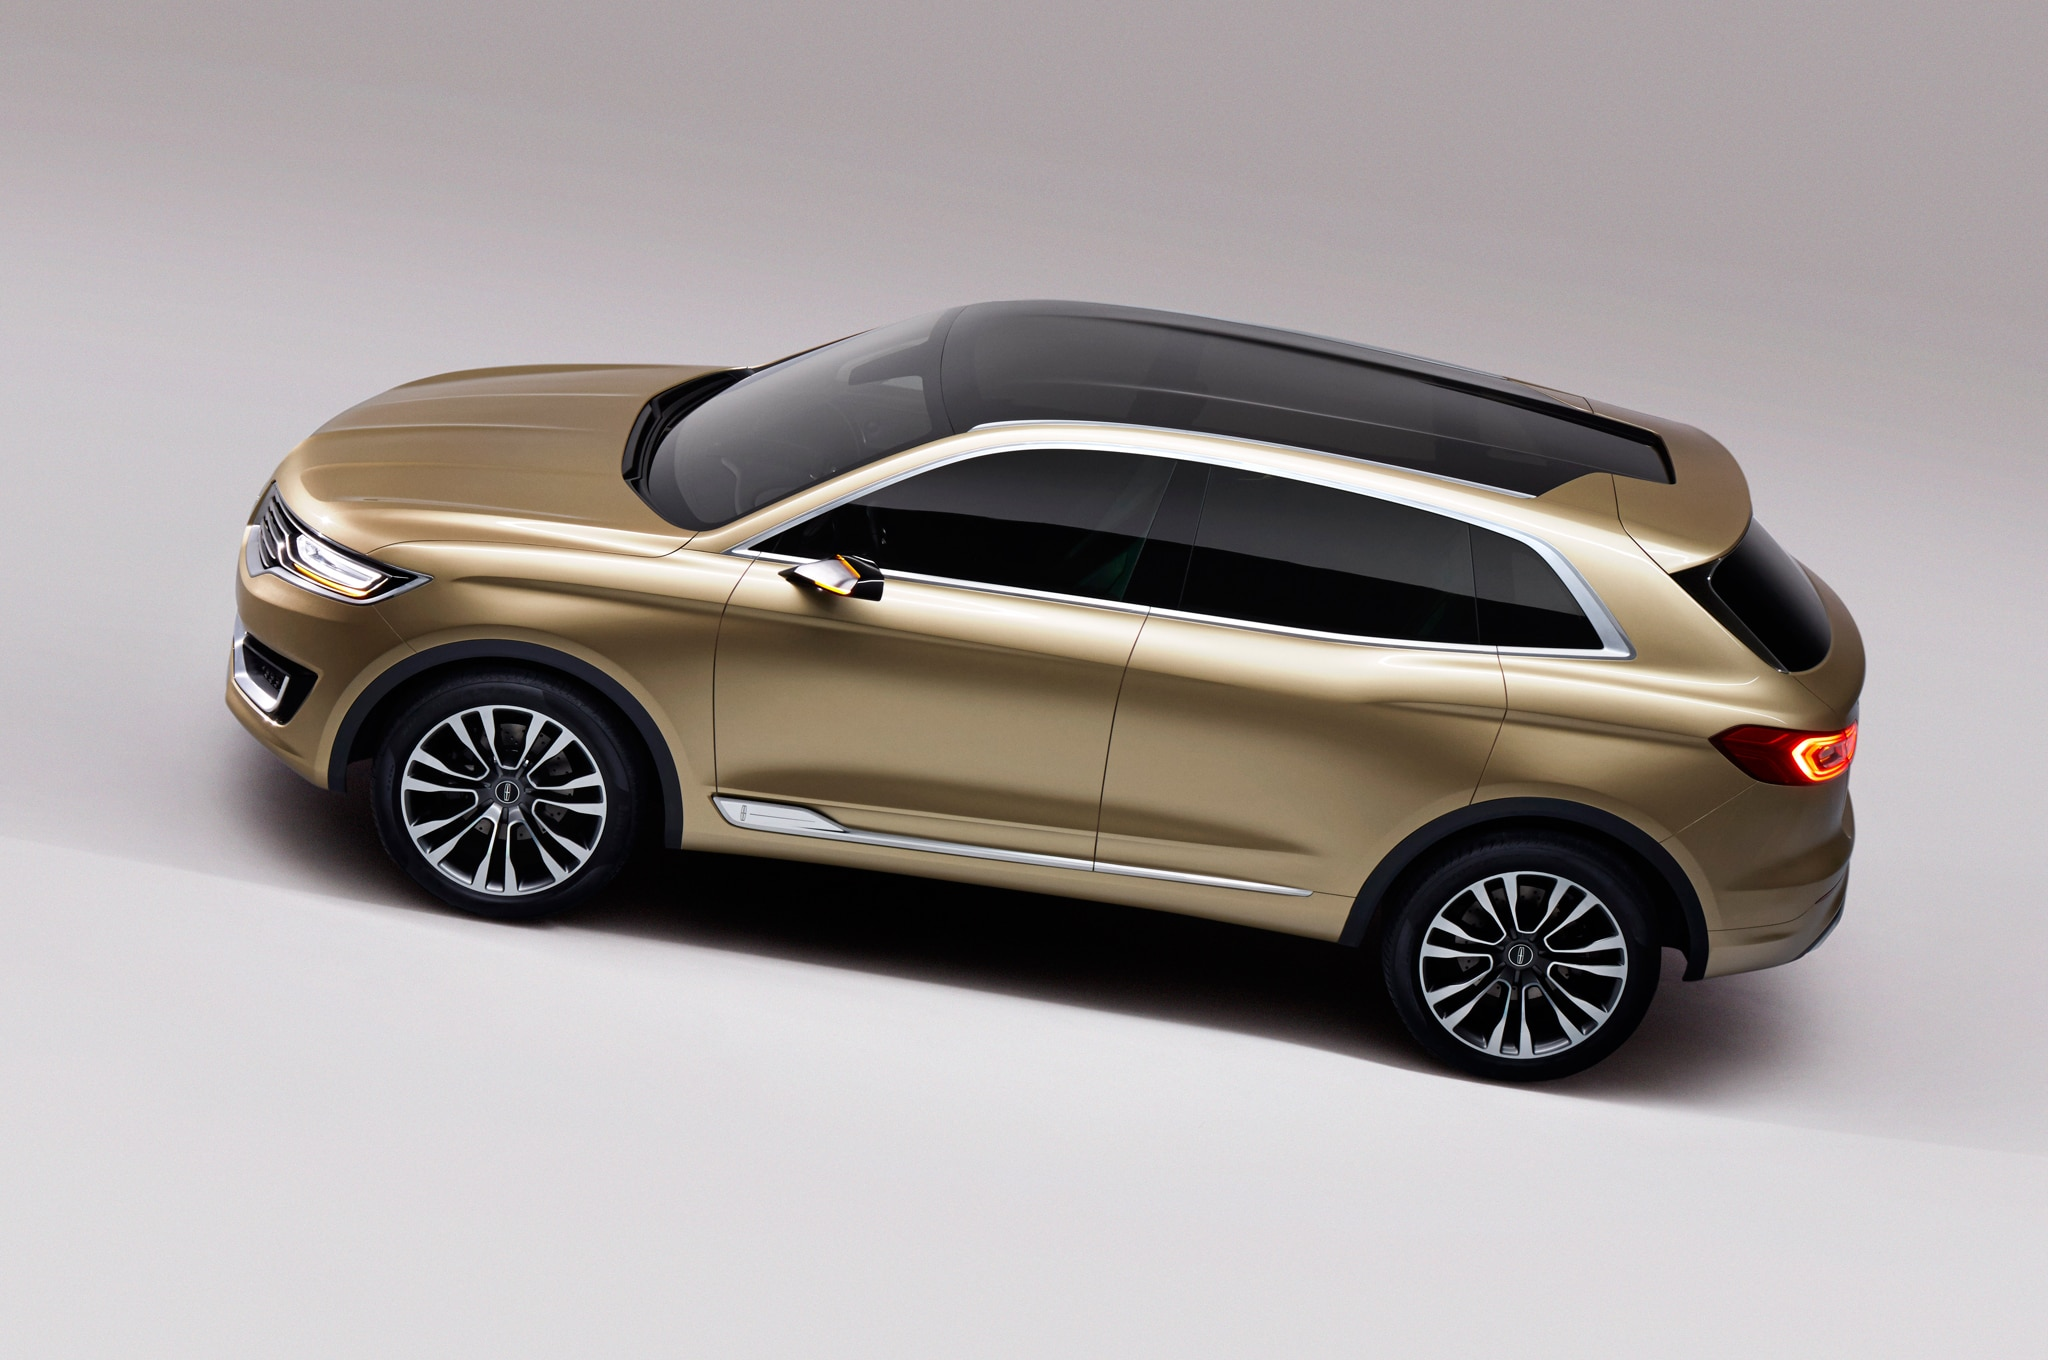 http://st.automobilemag.com/uploads/sites/11/2014/04/Lincoln-MKX-Concept-top-view-02.jpg